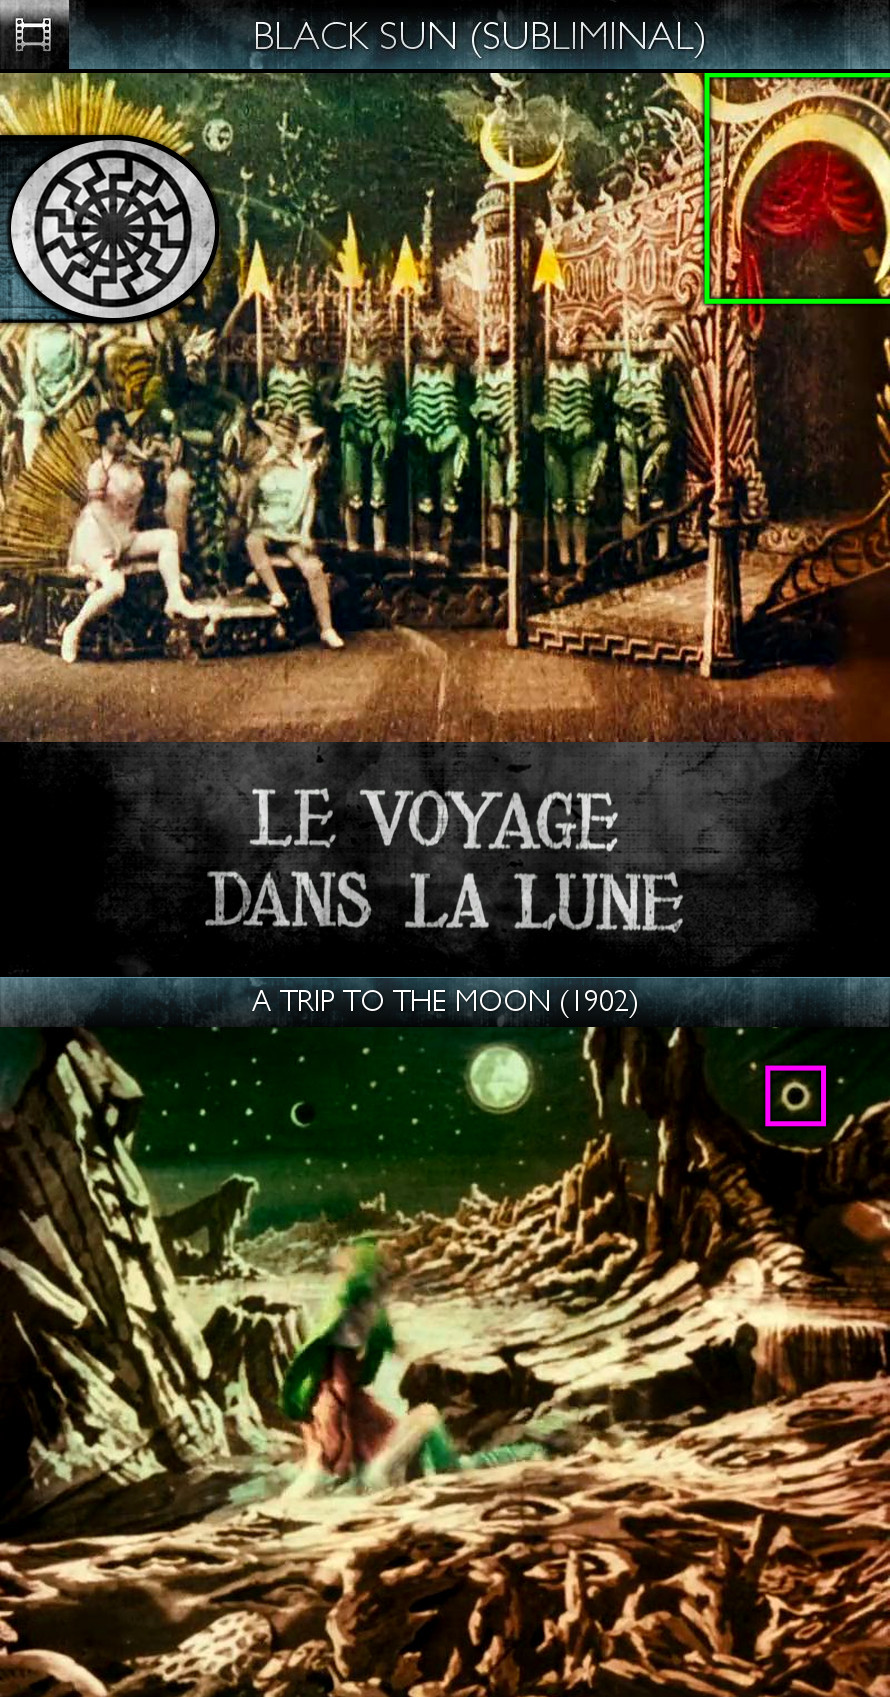 Voyage dans la Lune (A Trip to the Moon) (1902) - Black Sun - Subliminal